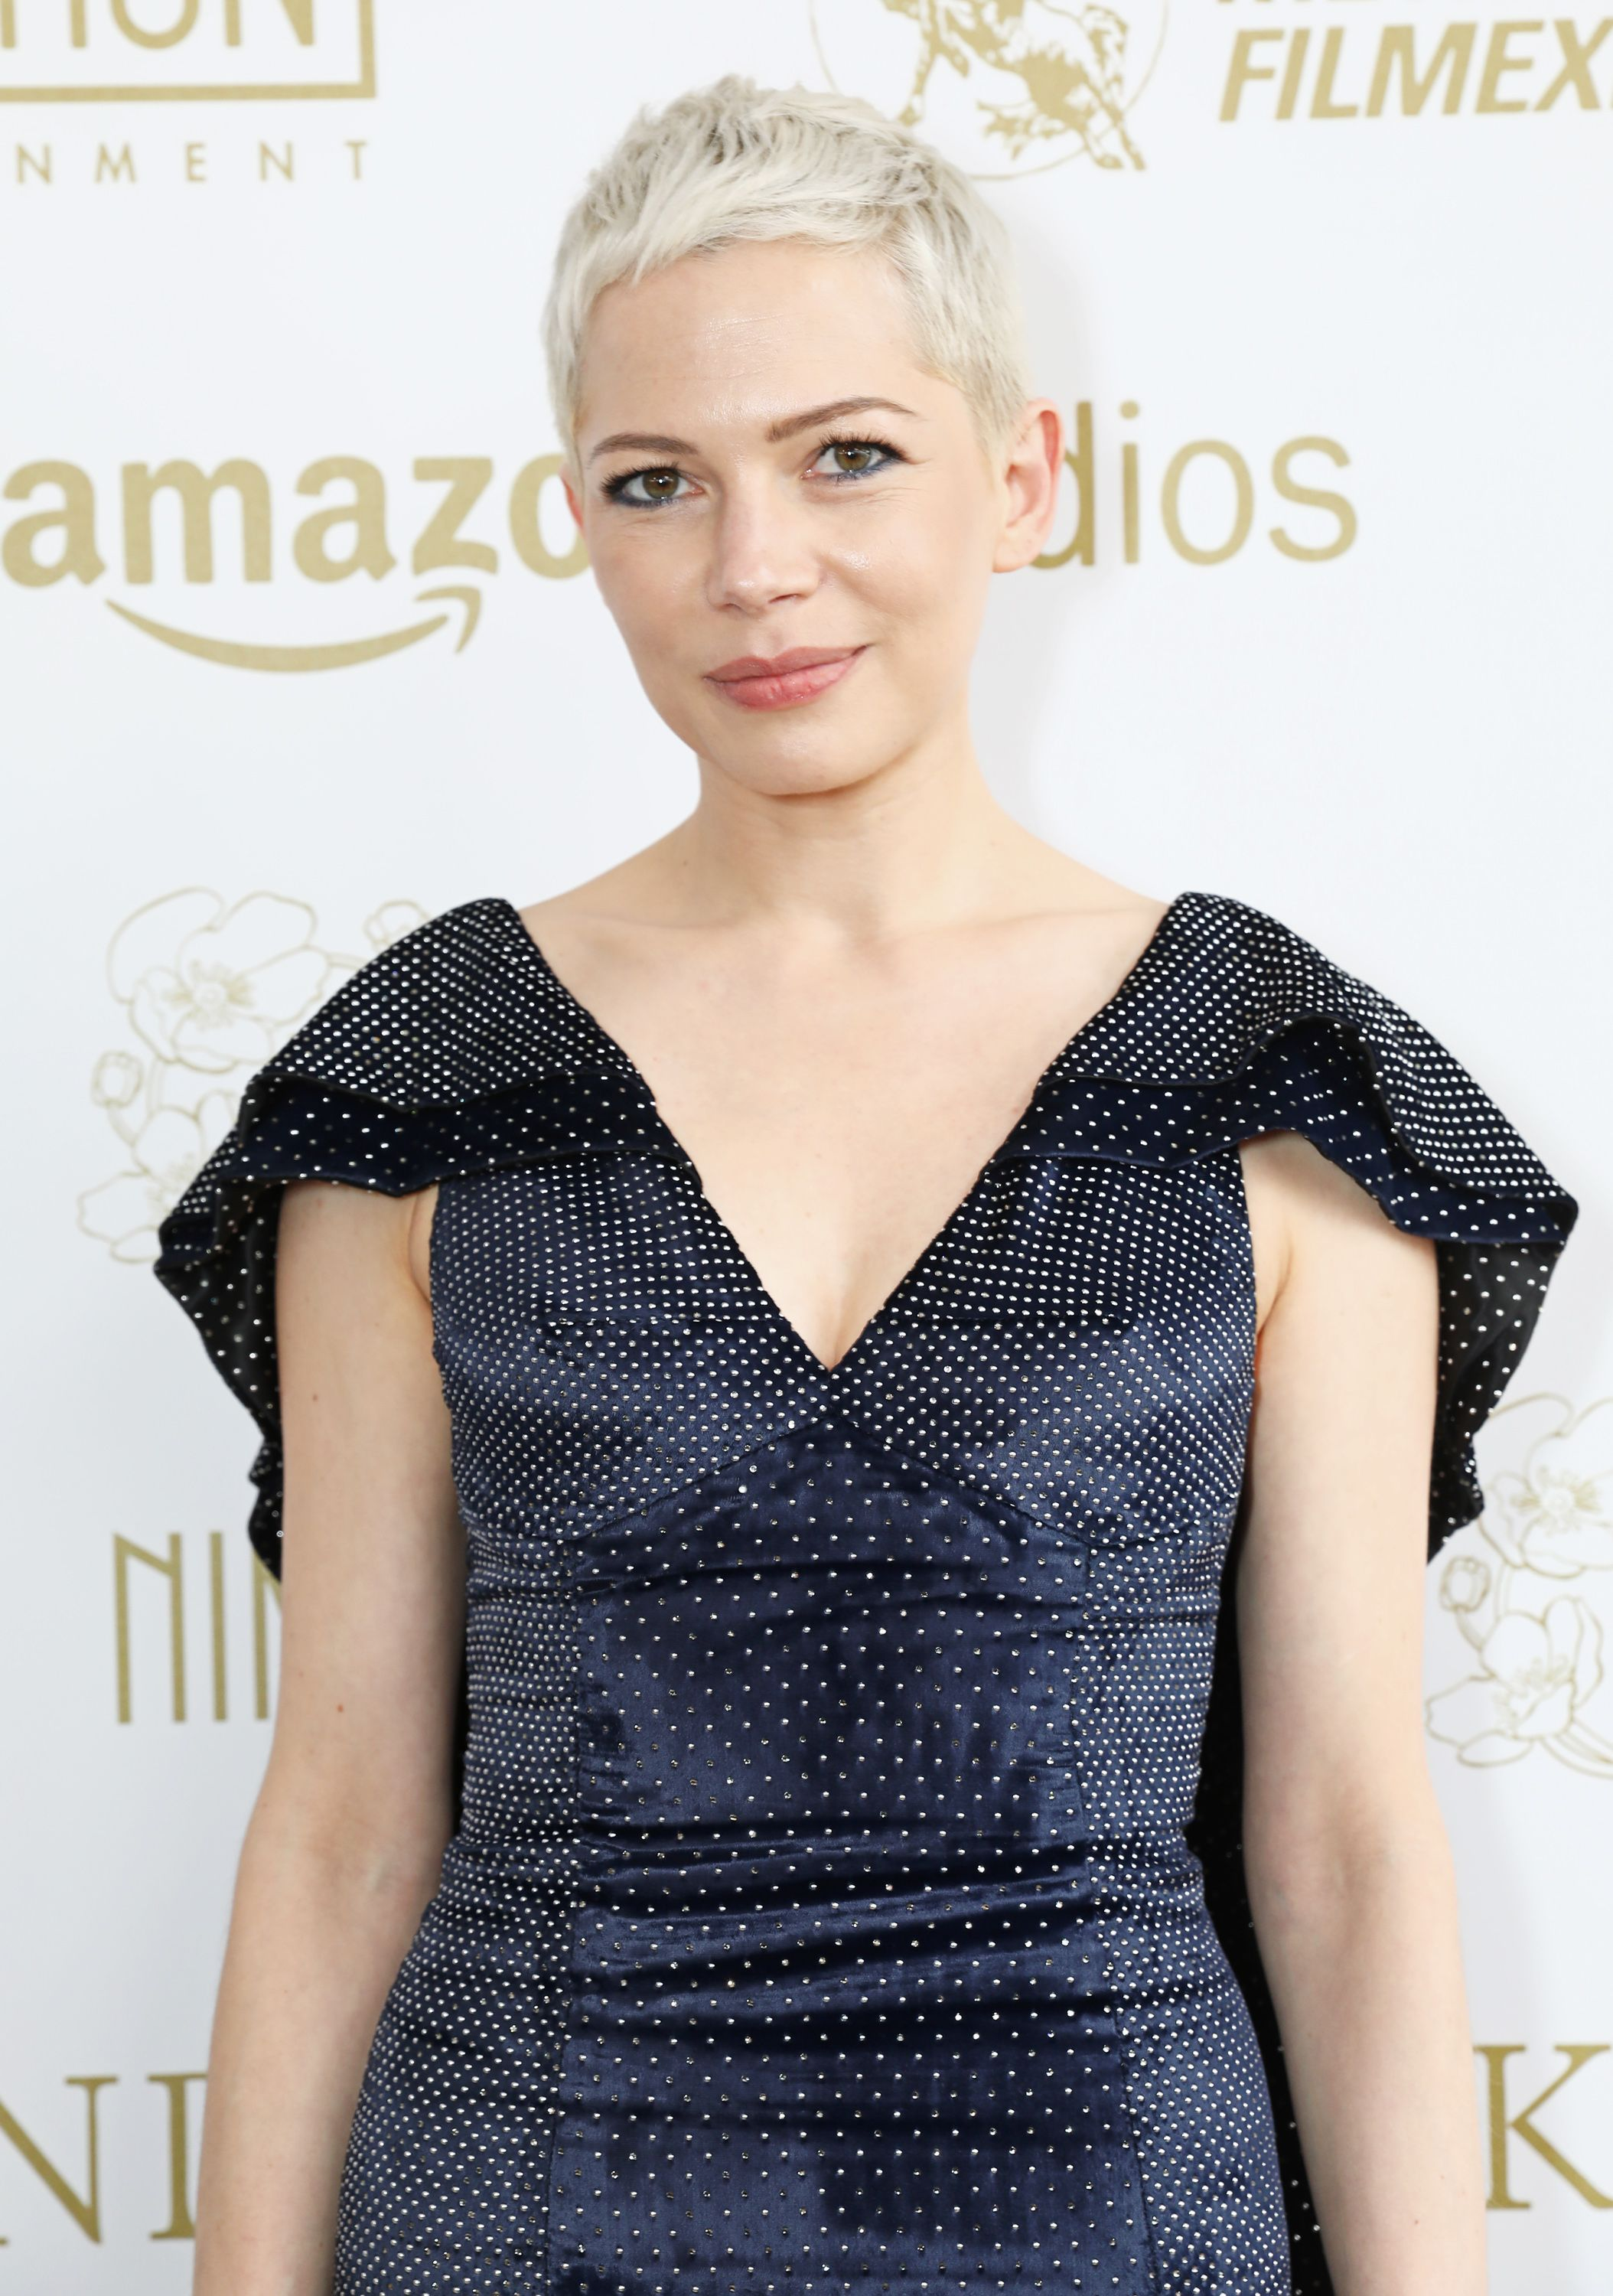 """Michelle Williams at the Amazon Studios official after party for """"Wonderstruck"""" during the 70th annual Cannes Film Festival on May 18, 2017 in Cannes, France 